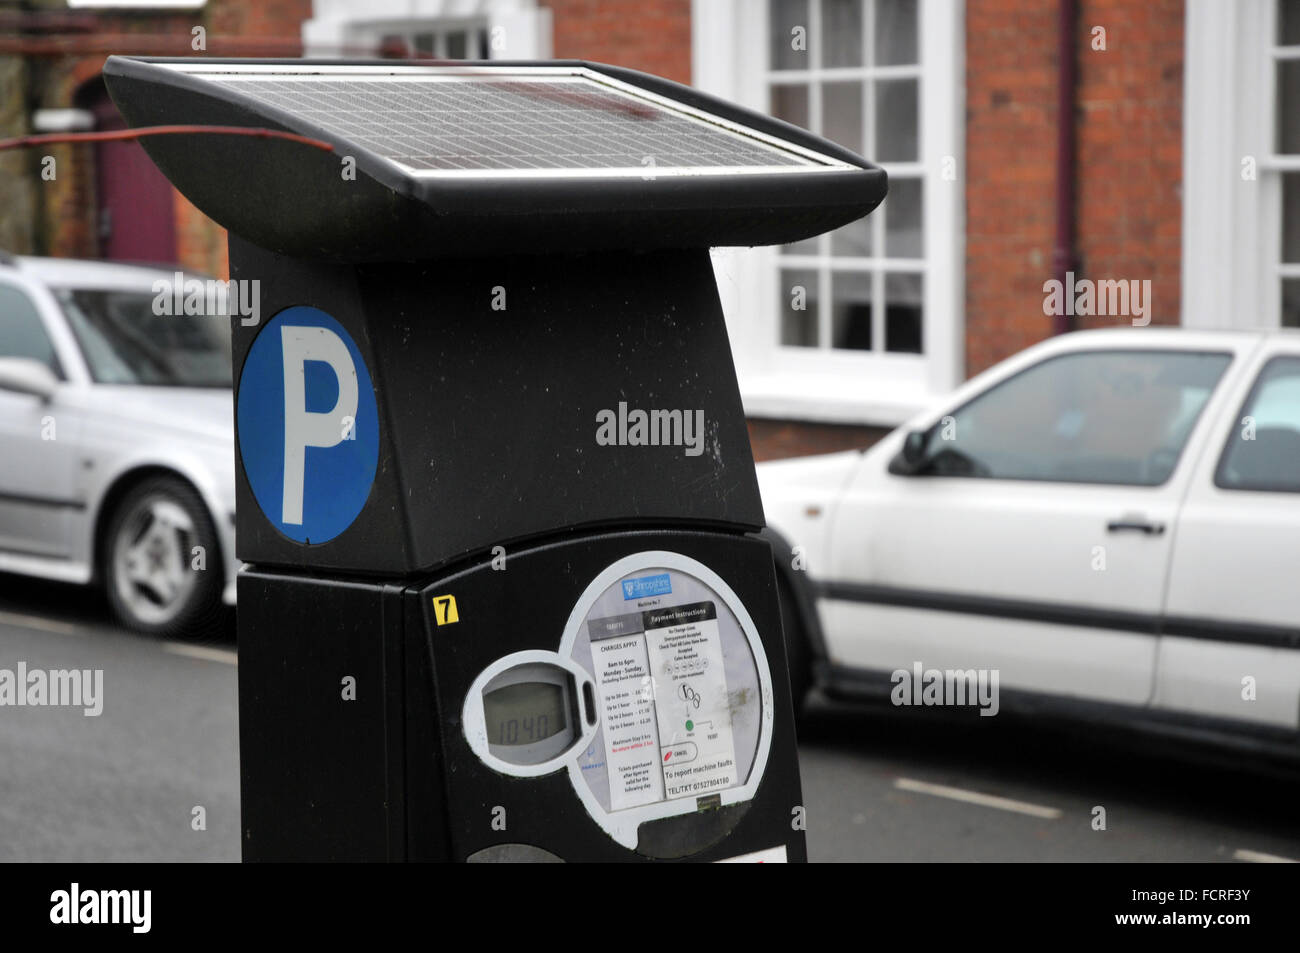 A car parking  meter in Shropshire, UK - Stock Image